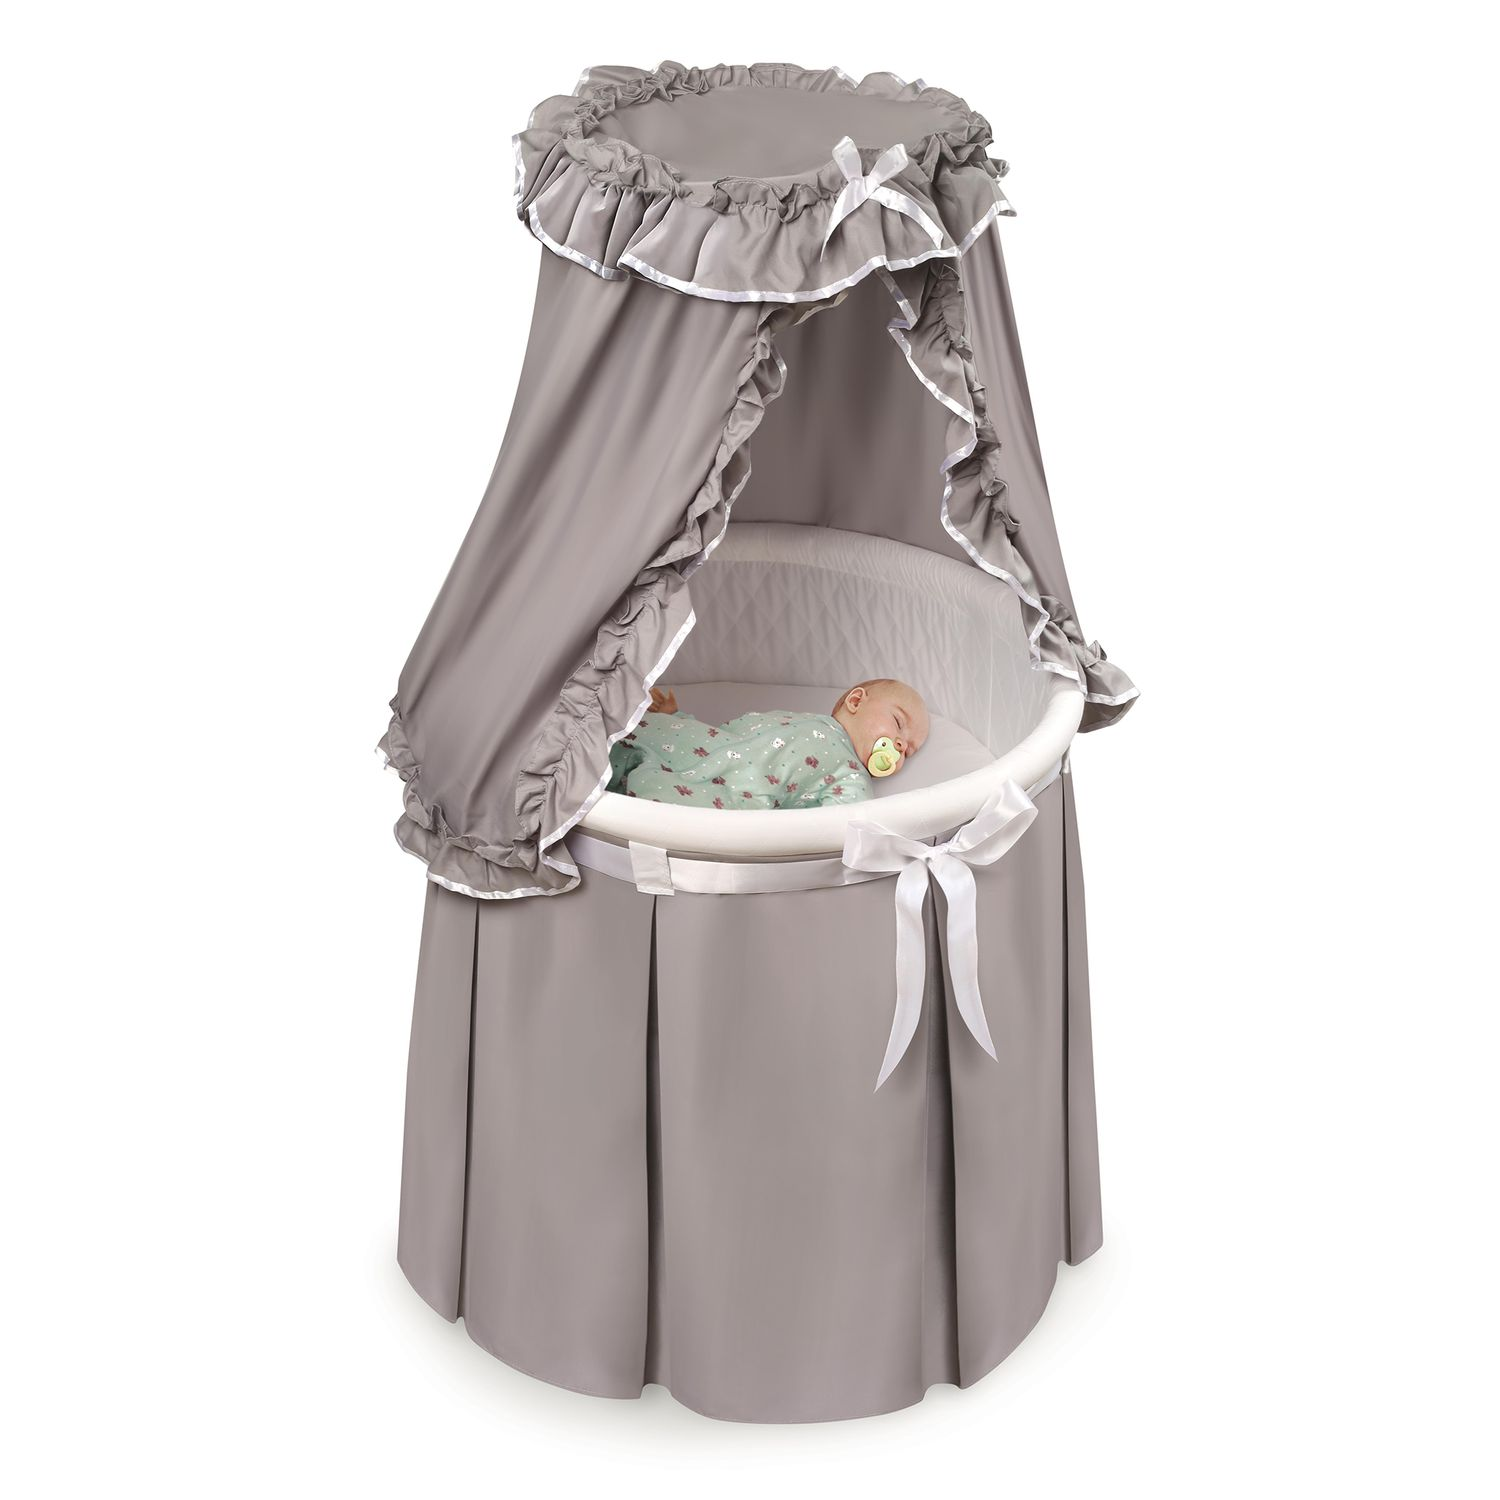 Badger Basket Oval Bassinet   Bows. Regular